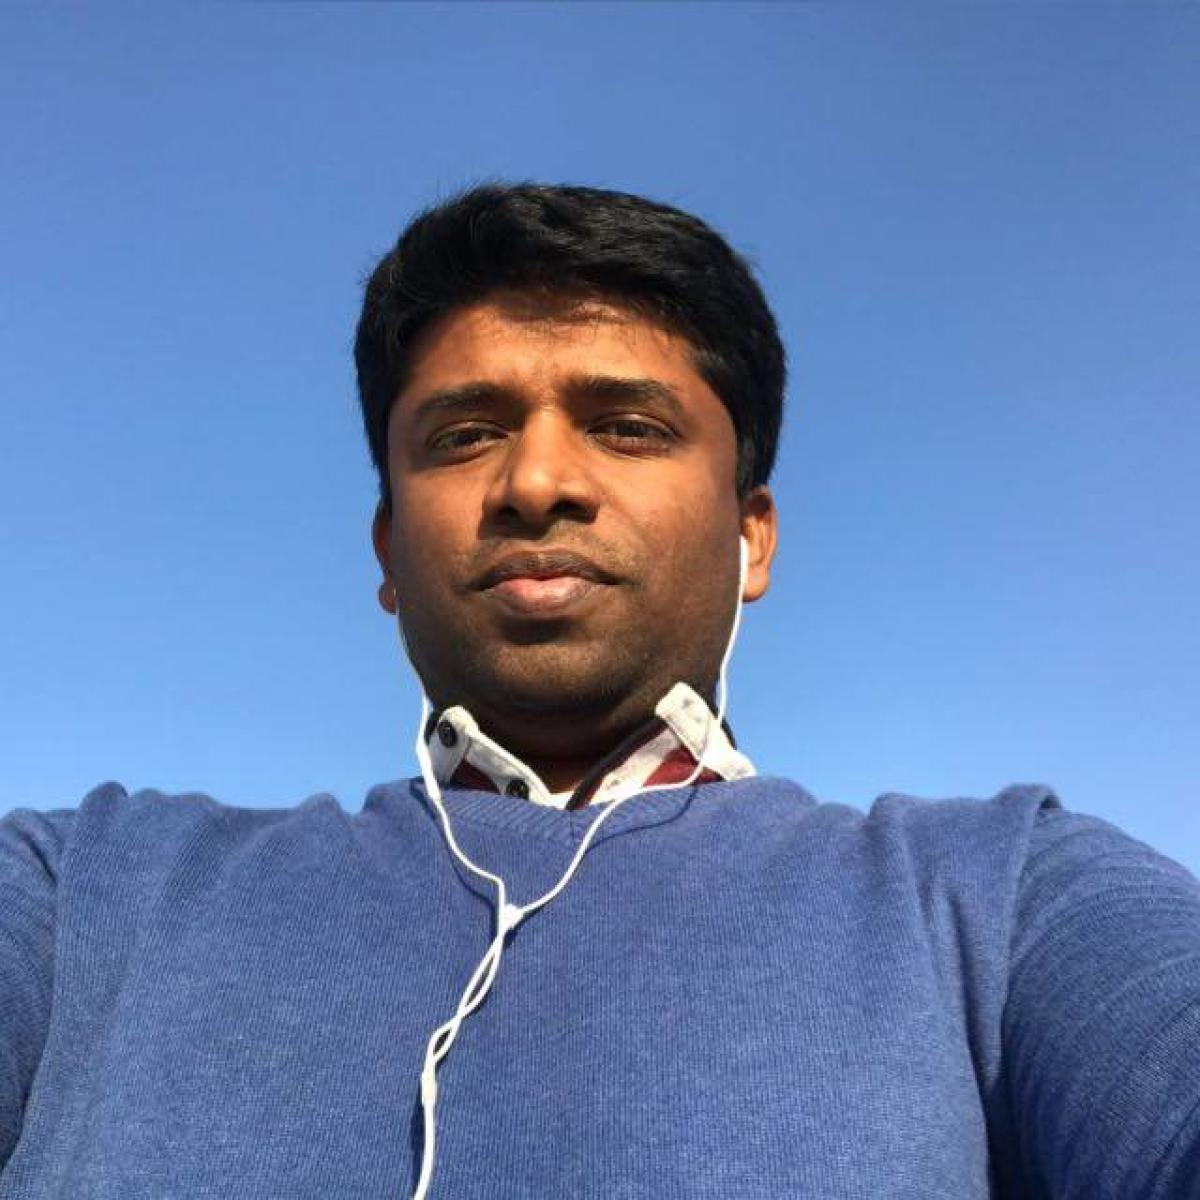 IAS officer from Kerala quits for being silenced